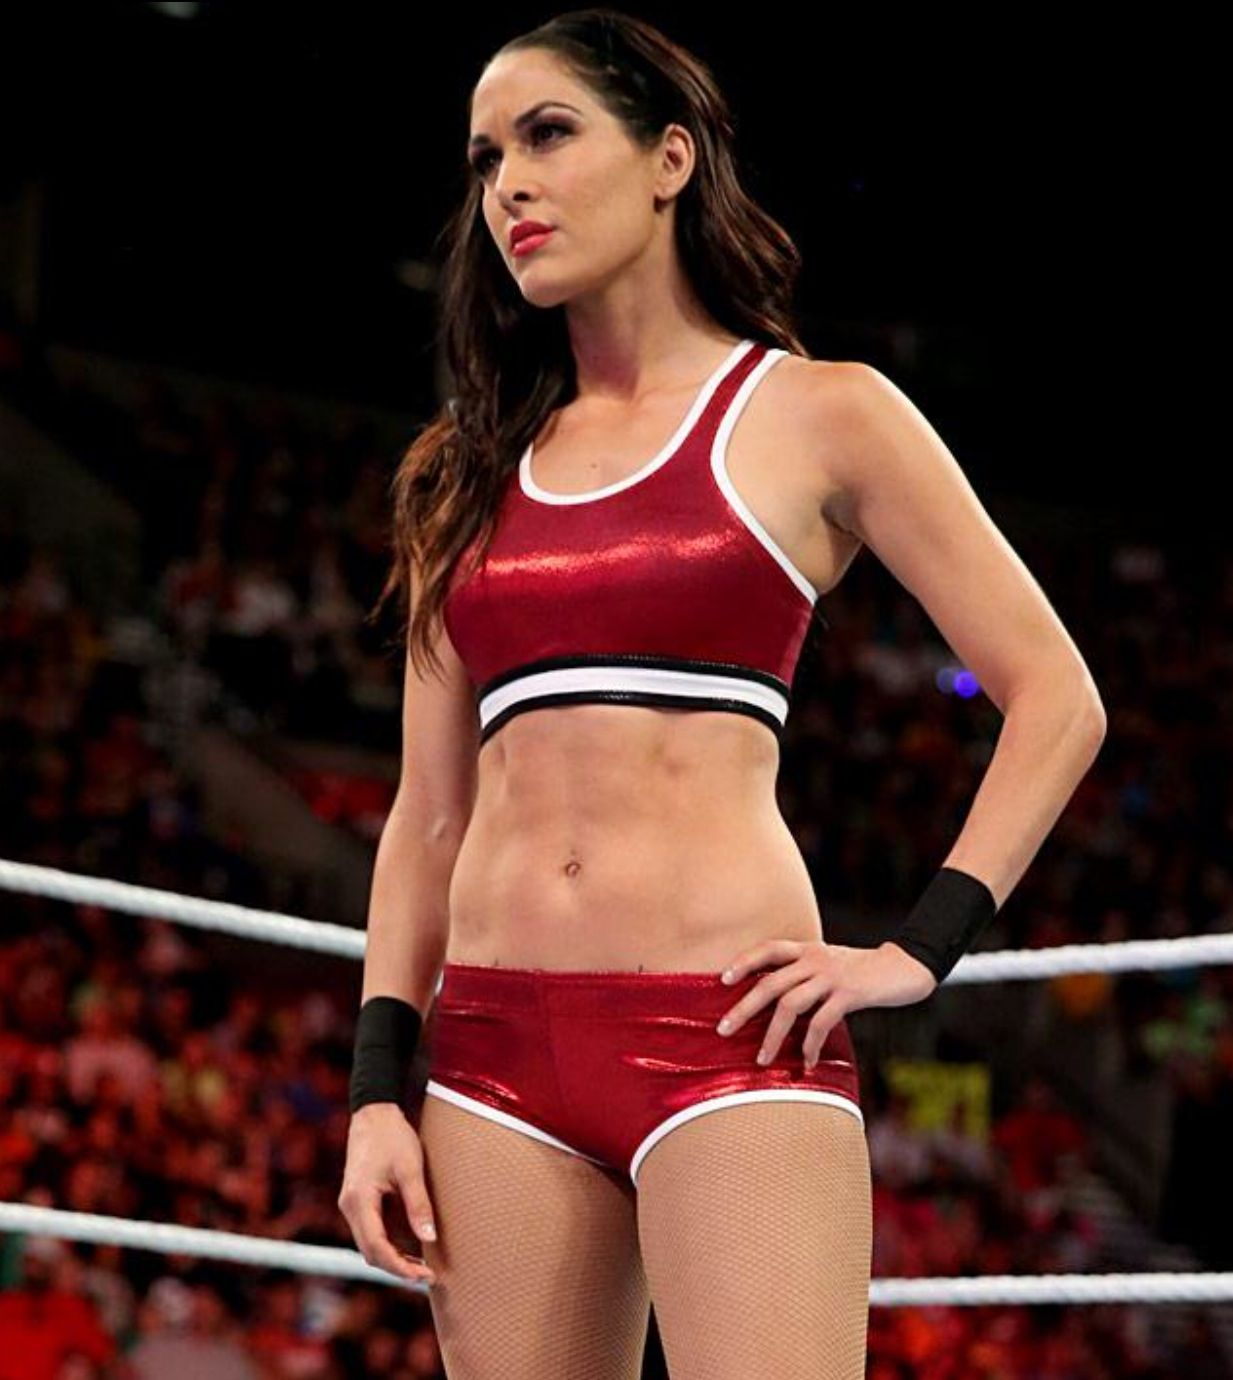 brie bella too sexy